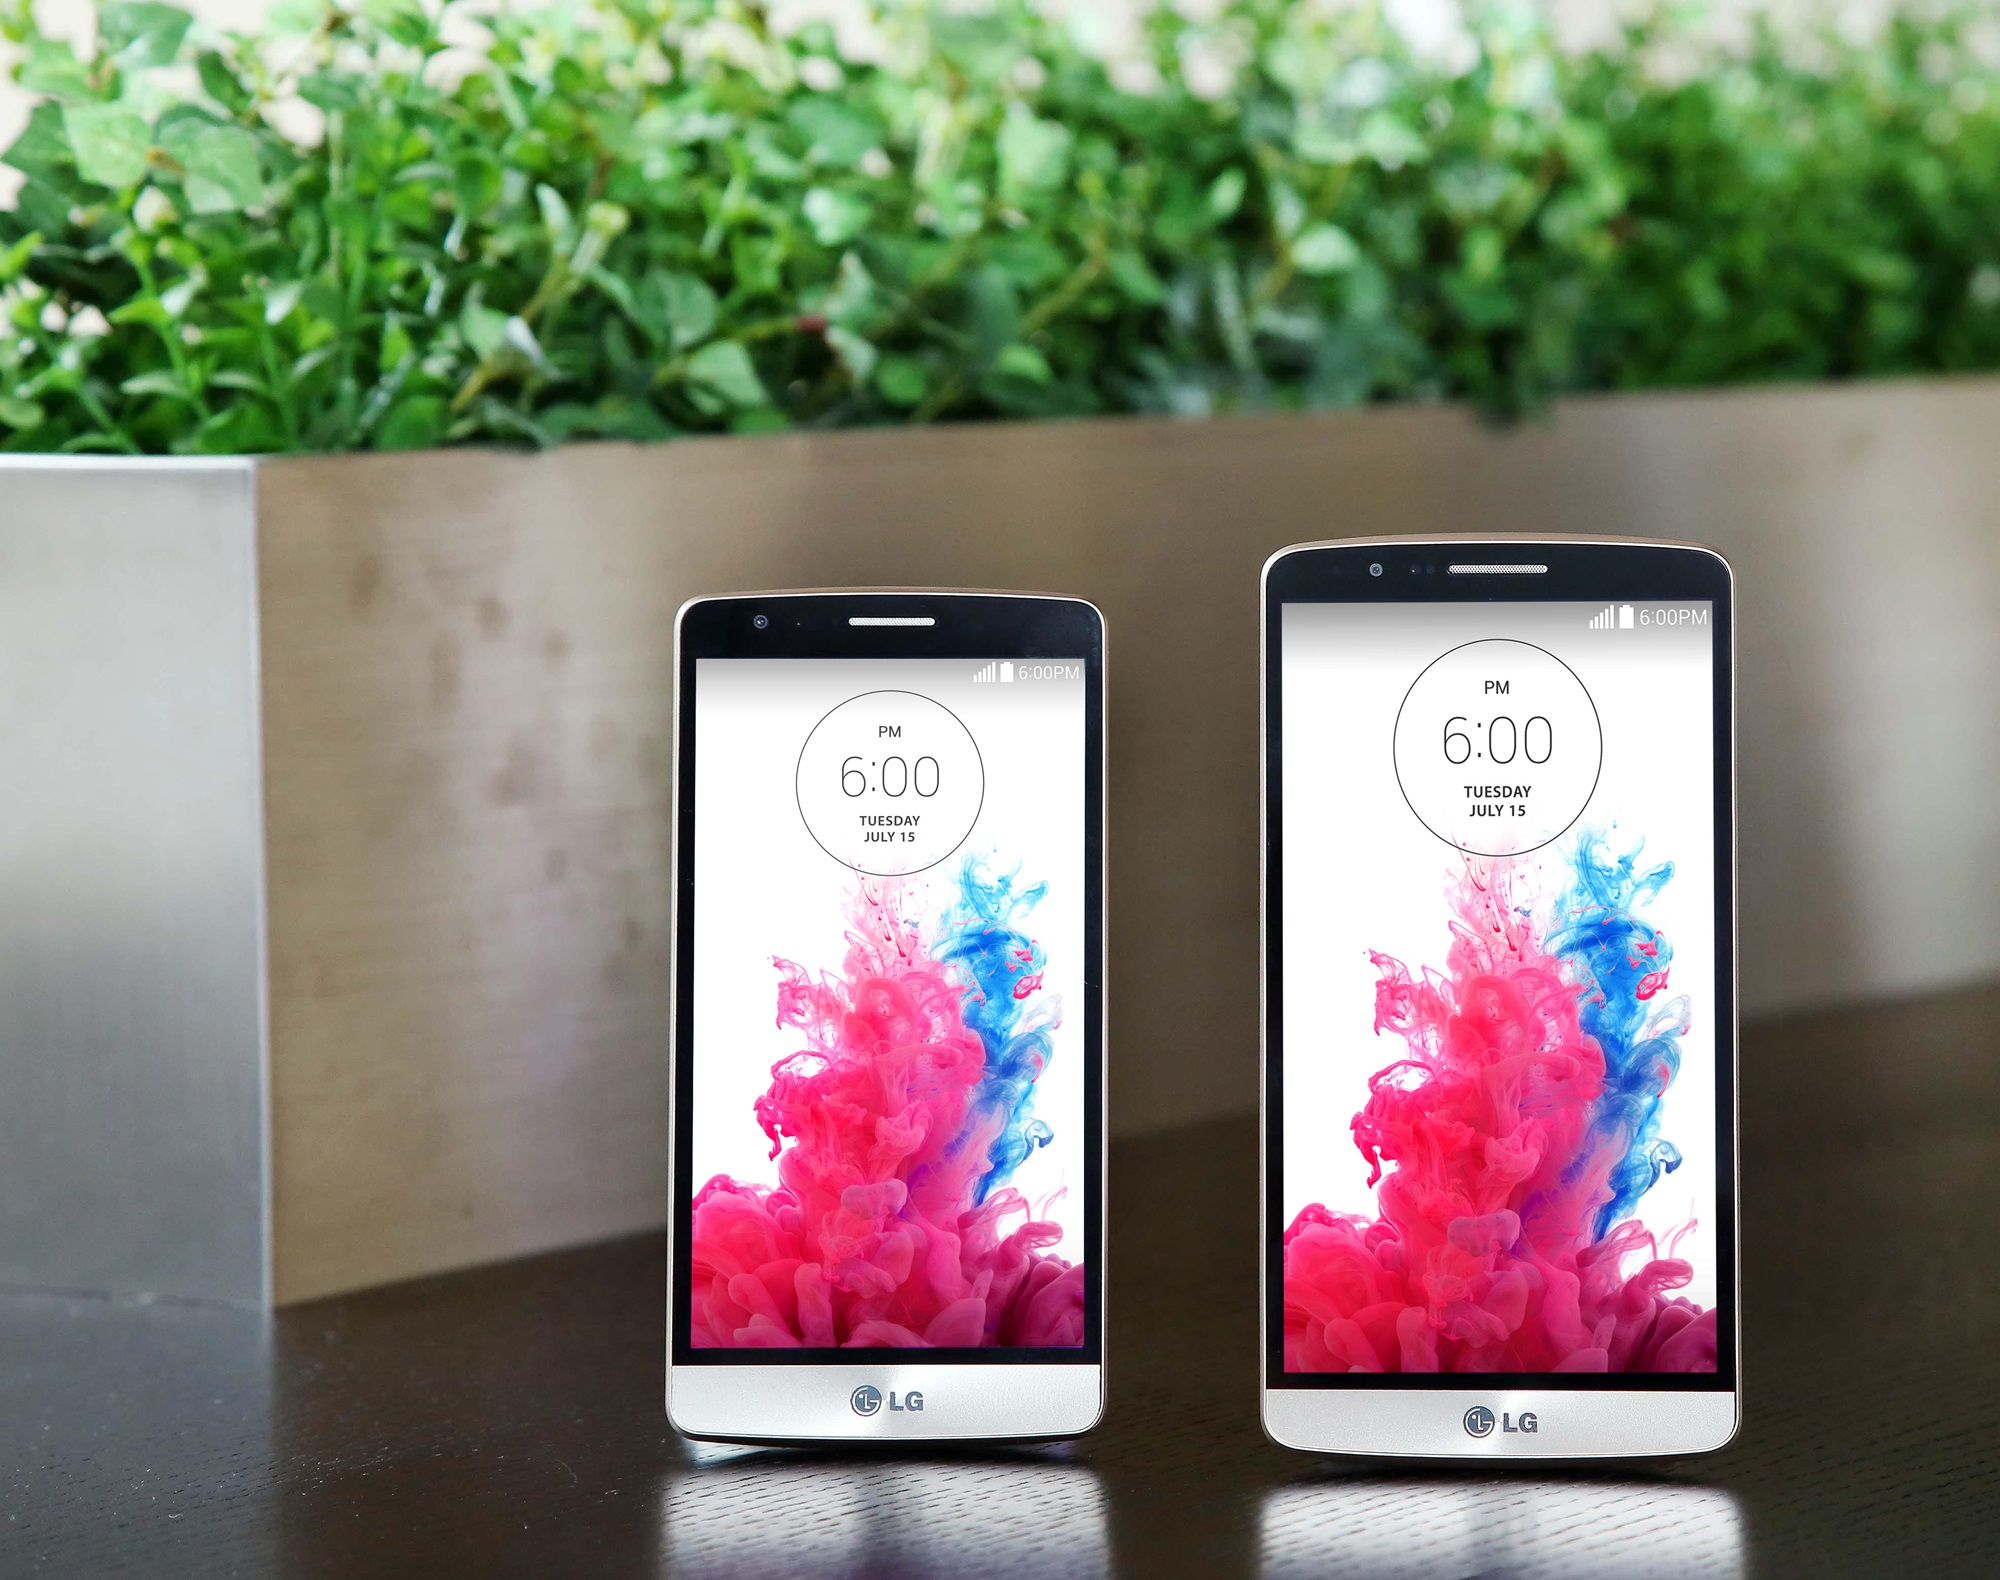 LG Electronics announced the official launch of LG G3 Beat, a mid-tier variant of LG's highly acclaimed LG G3 smartphone. (image credit: LG Electronics)